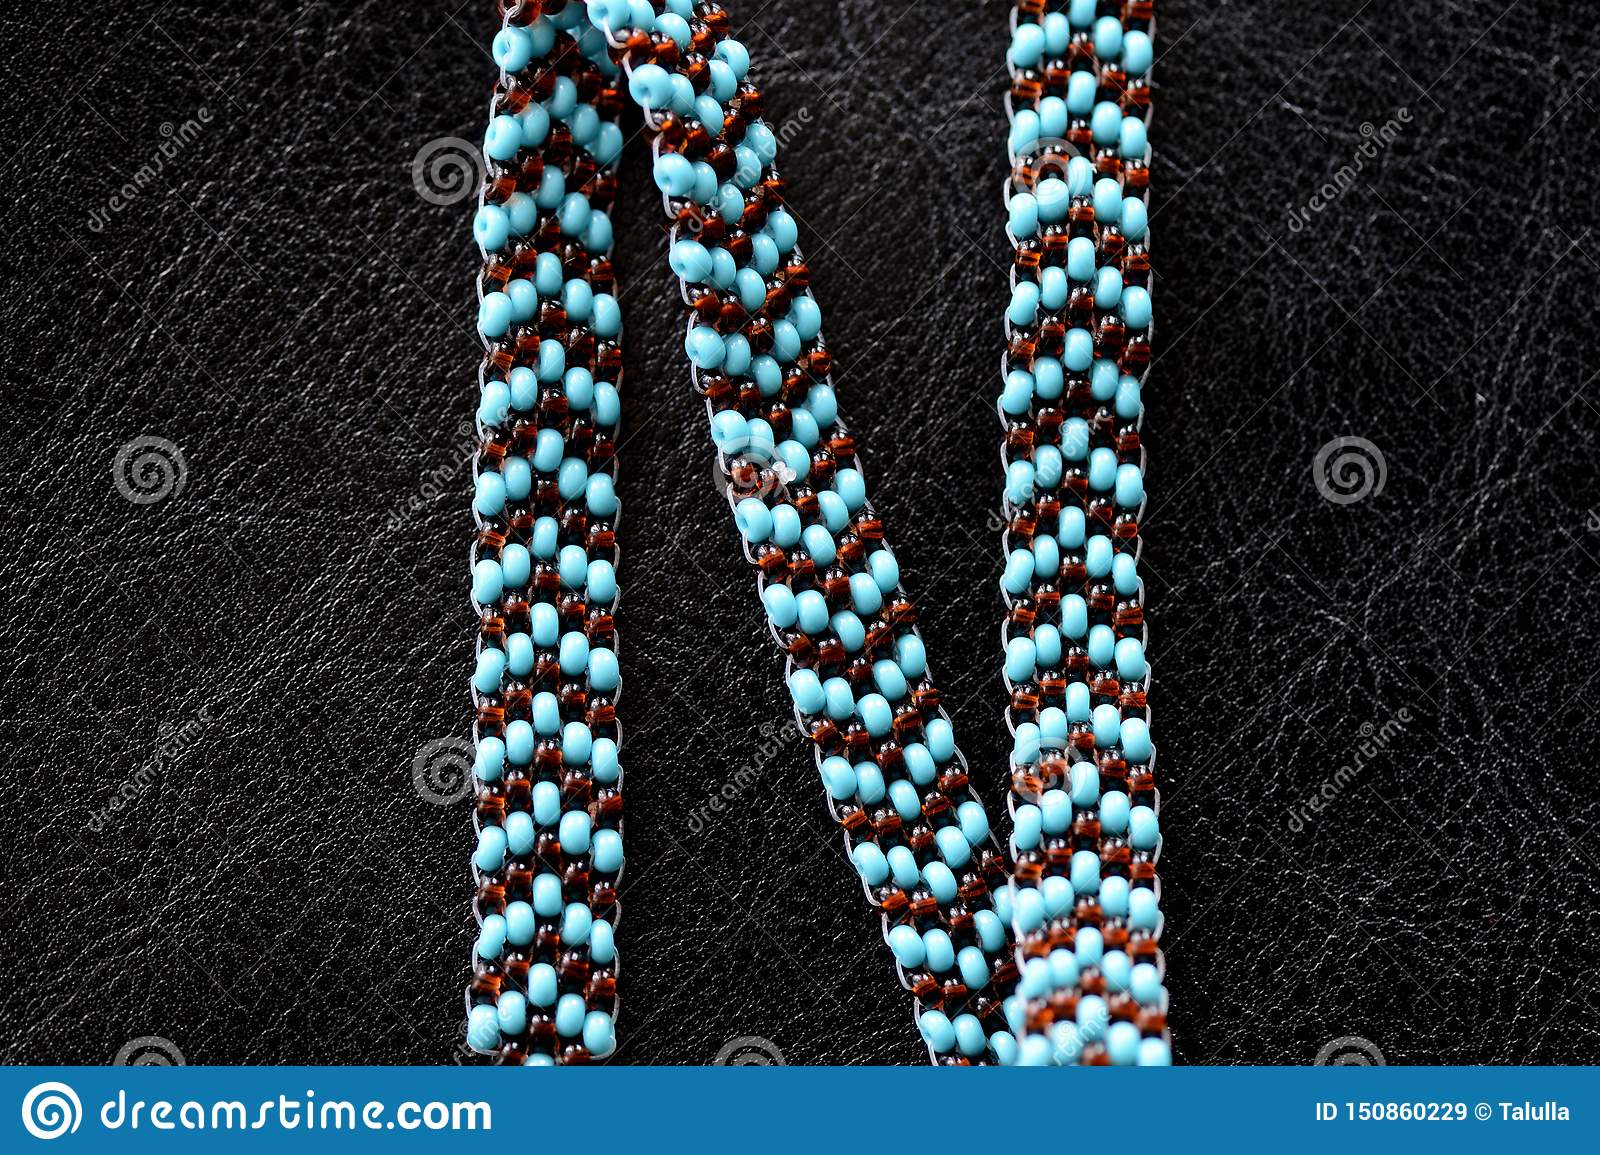 Peyote Choker Necklace Made Of Seed Beads On A Dark Background Stock Image Image Of Collar Handicraft 150860229